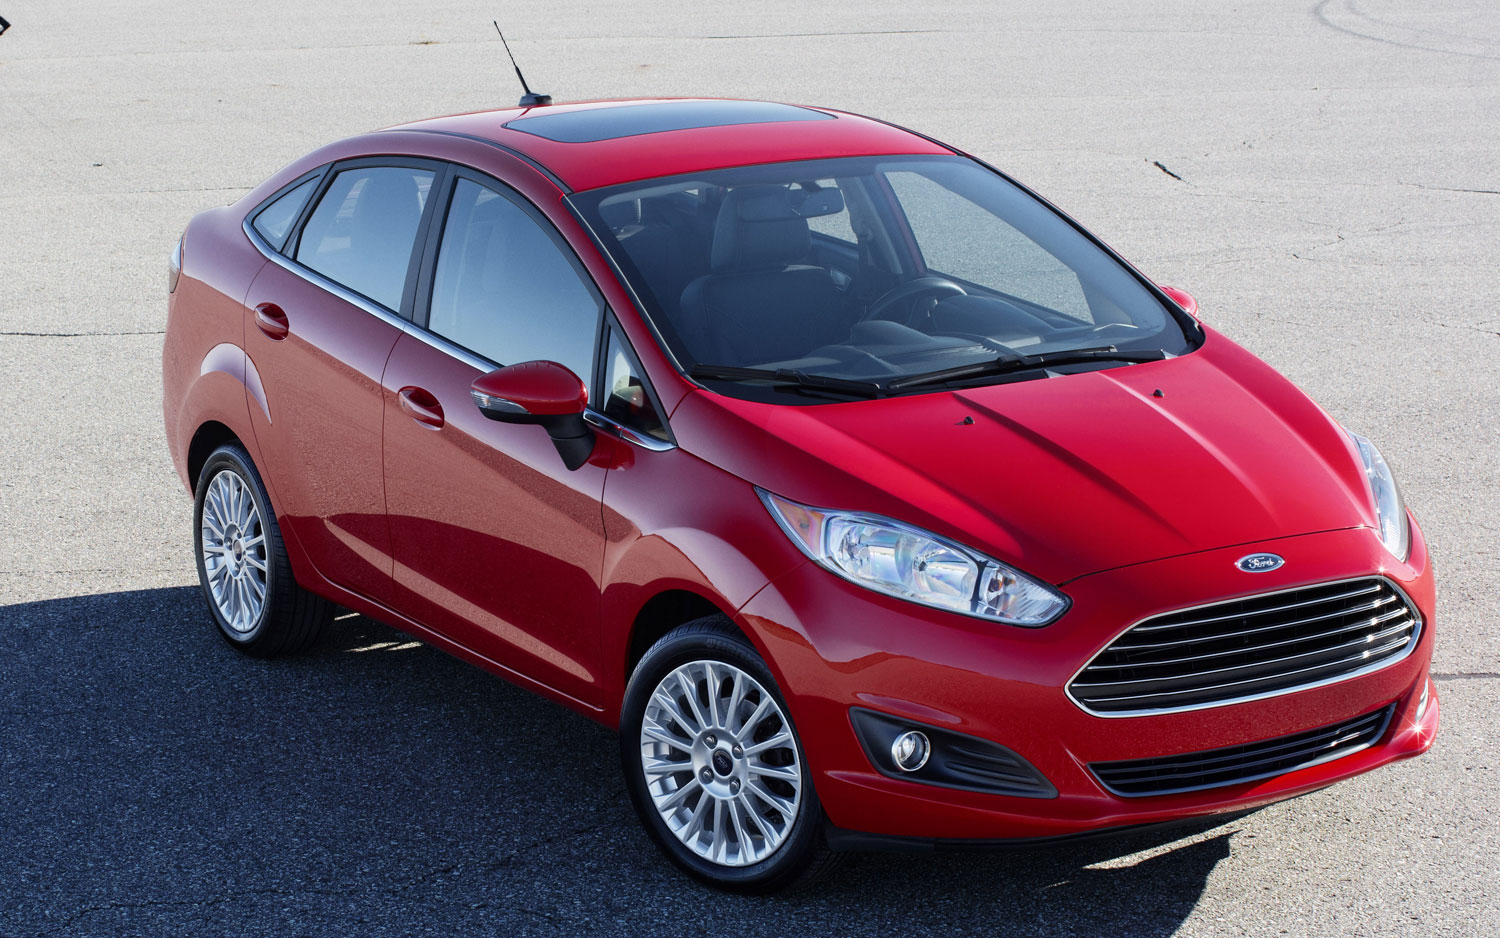 2014 Ford Fiesta ST Coming To U.S.